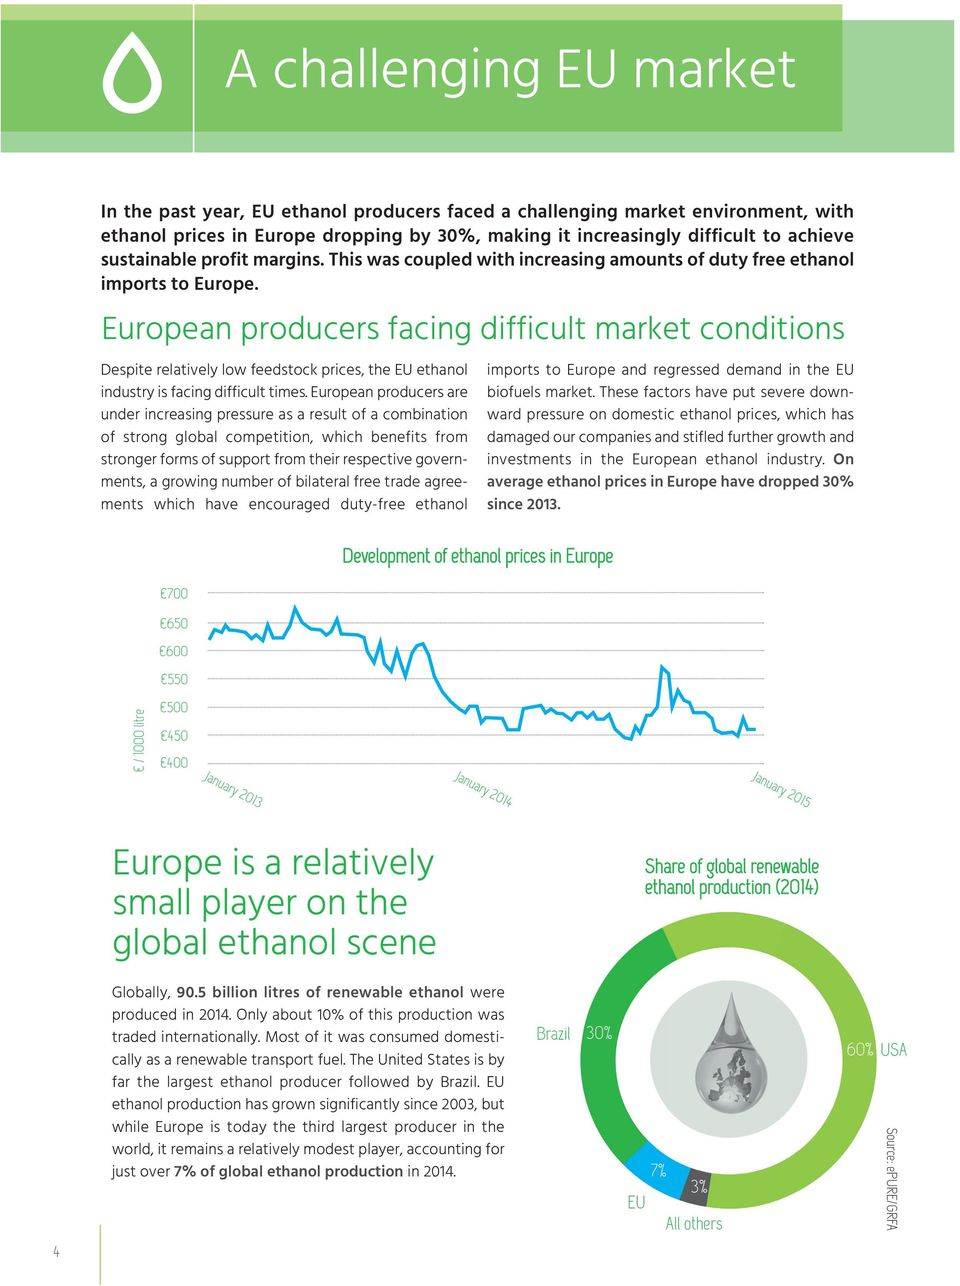 European producers facing difficult market conditions Despite relatively low feedstock prices, the EU ethanol industry is facing difficult times.